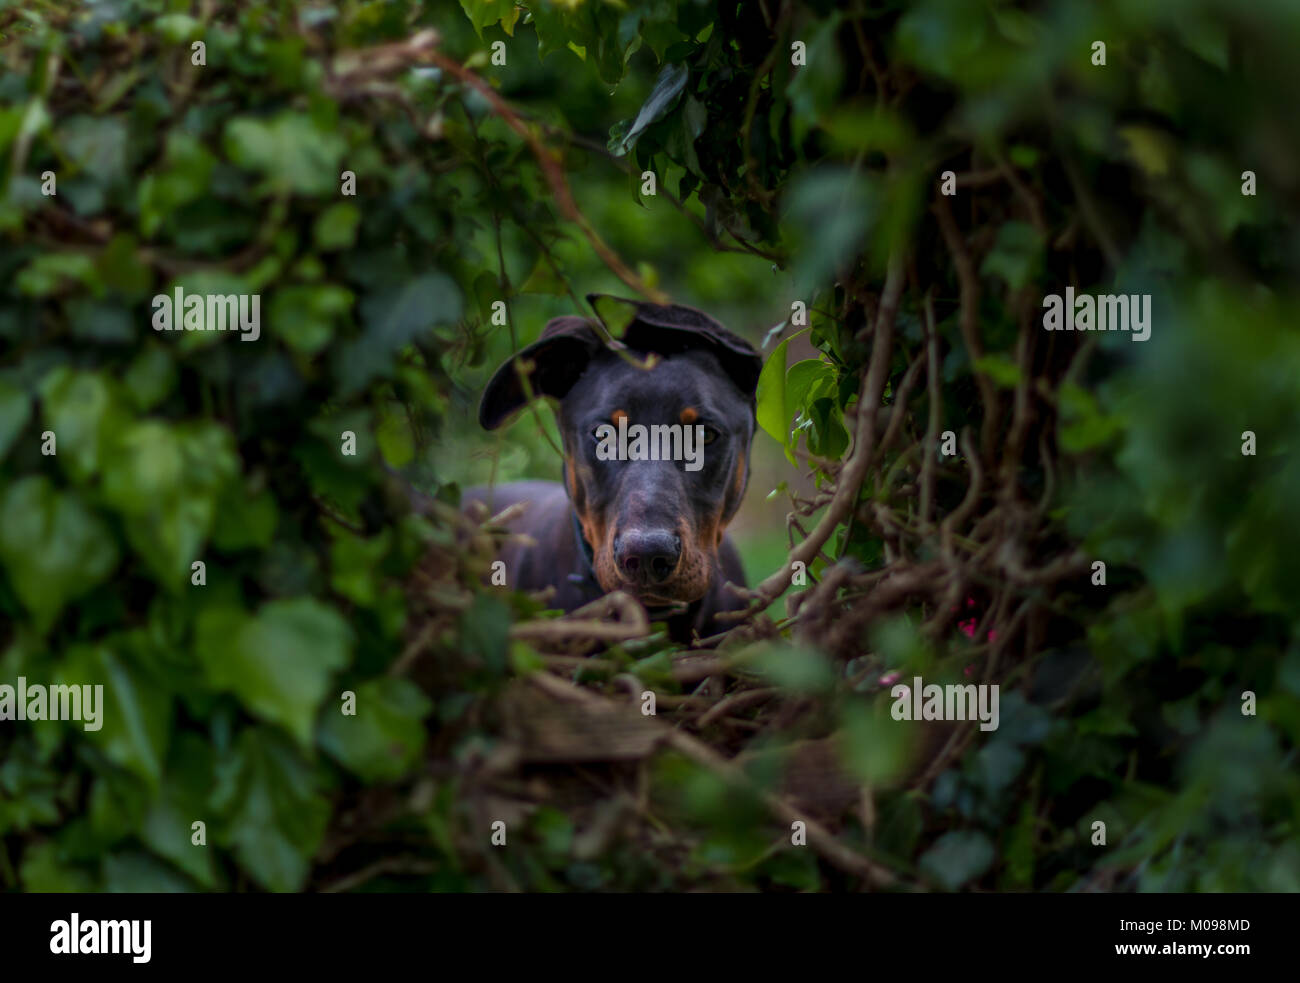 Rocco the Friendly Doberman - Stock Image